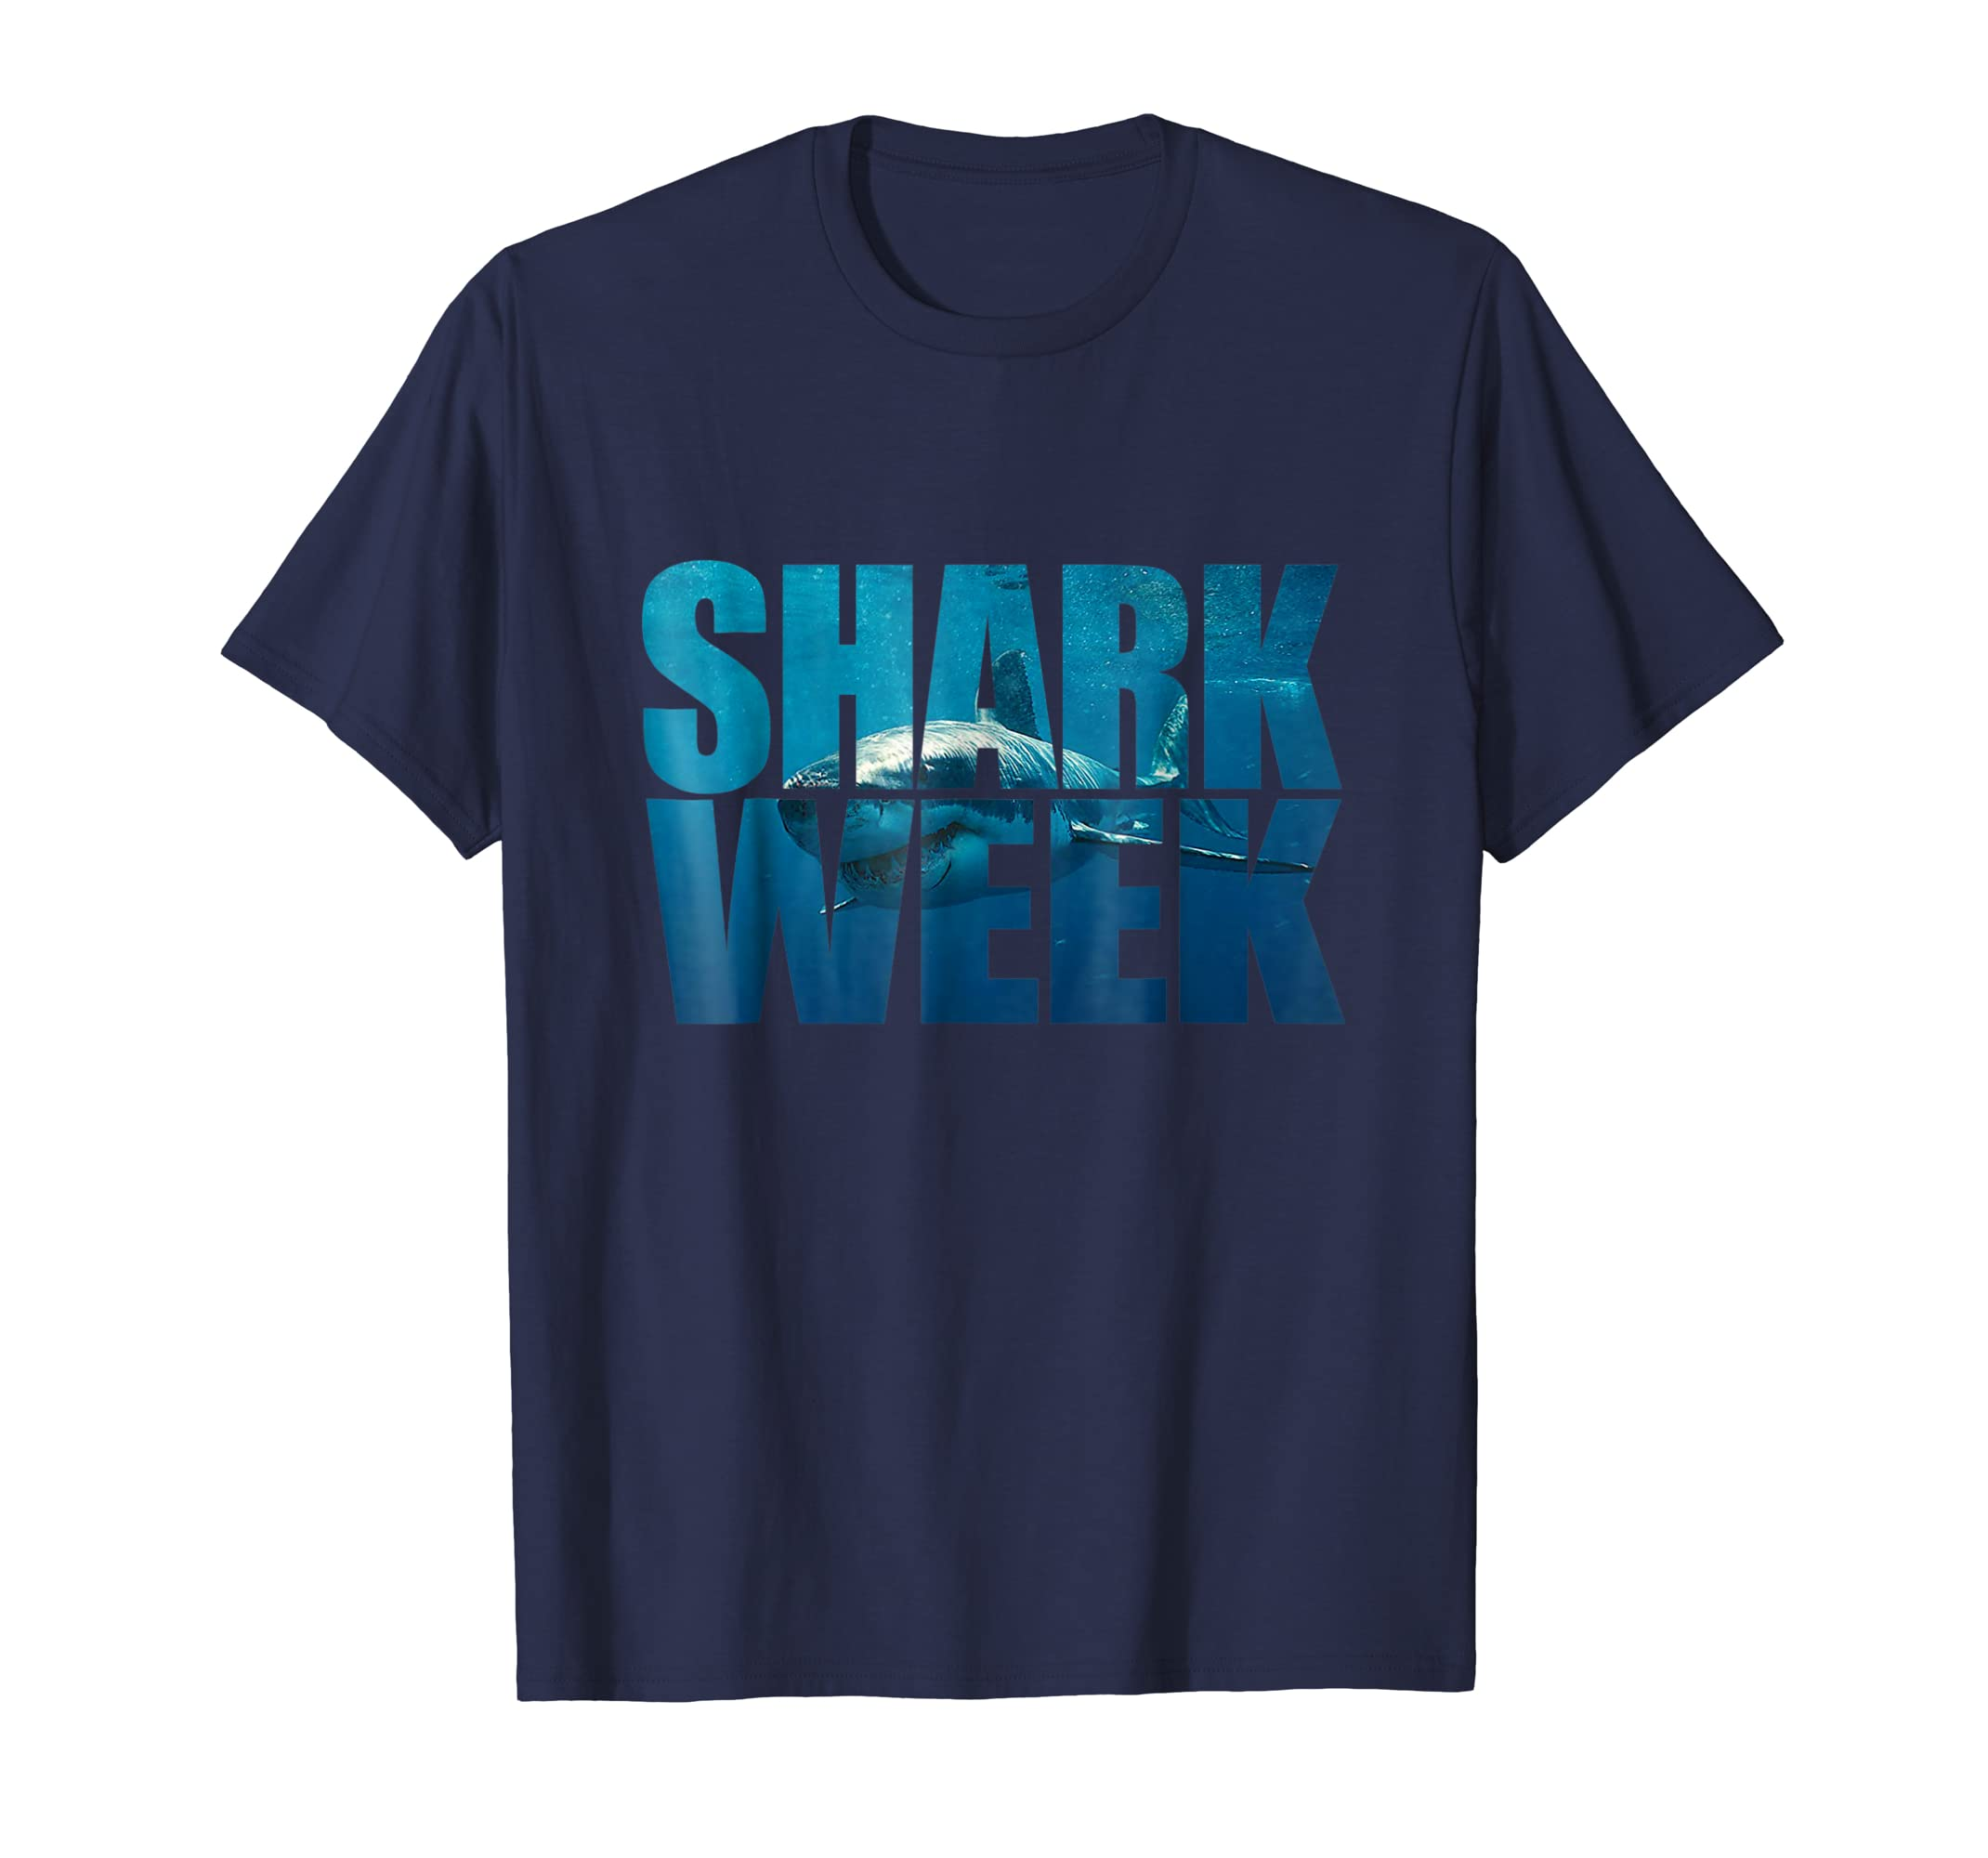 Week of The Shark T-Shirt - New 2018 Novelty Graphic-mt